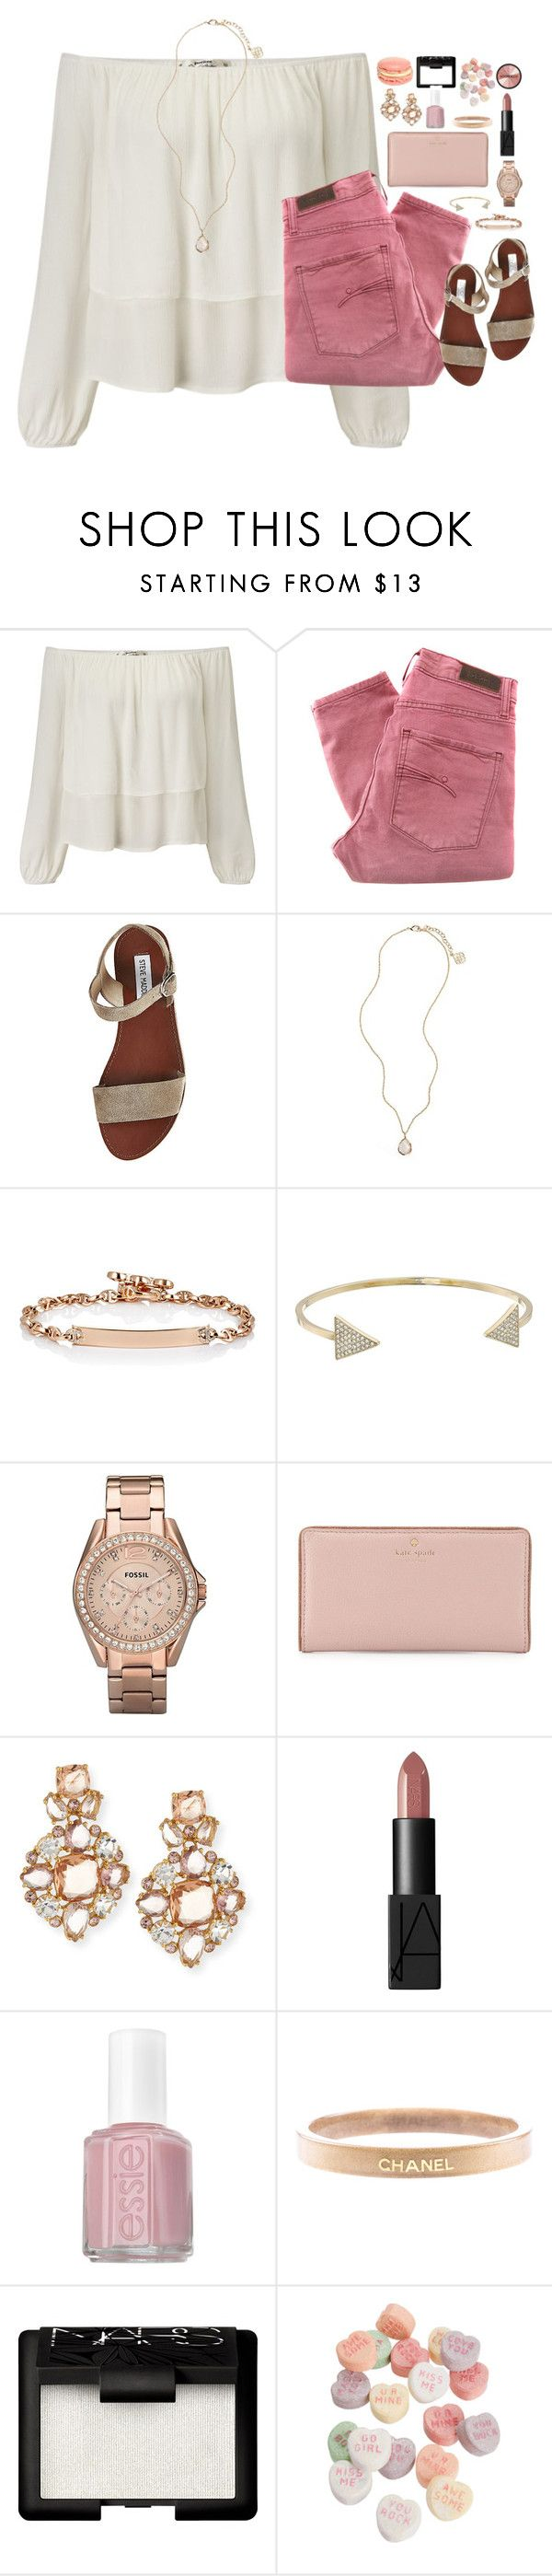 """""""'Cause I'm so sick of love songs, so tired of tears So done with wishing you were still here Said I'm so sick of love songs, so sad and slow So why can't I turn off the radio?"""" by kaley-ii ❤ liked on Polyvore featuring Miss Selfridge, Nobody Denim, Steve Madden, Kendra Scott, Hoorsenbuhs, Michael Kors, FOSSIL, Kate Spade, NARS Cosmetics and Essie"""